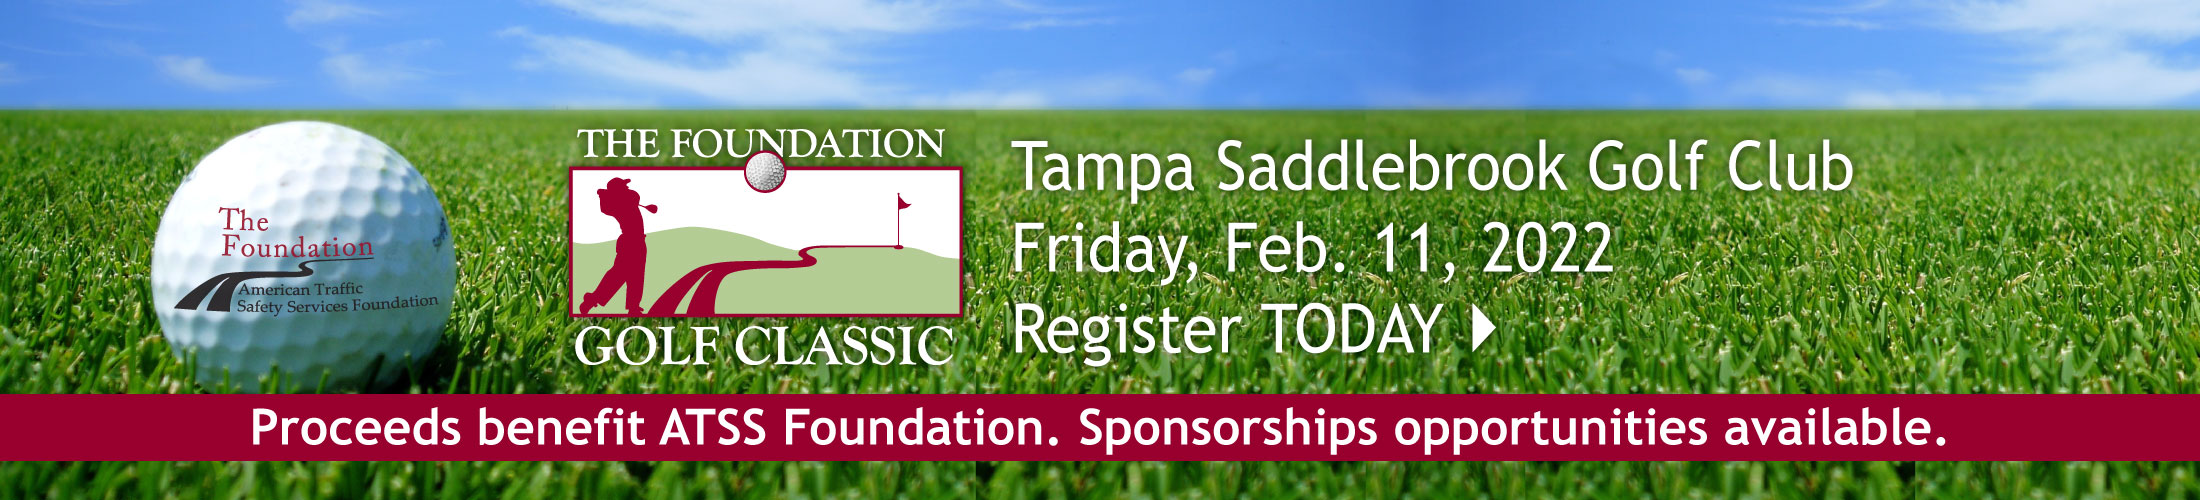 30th Annual Golf Classic registration is now open